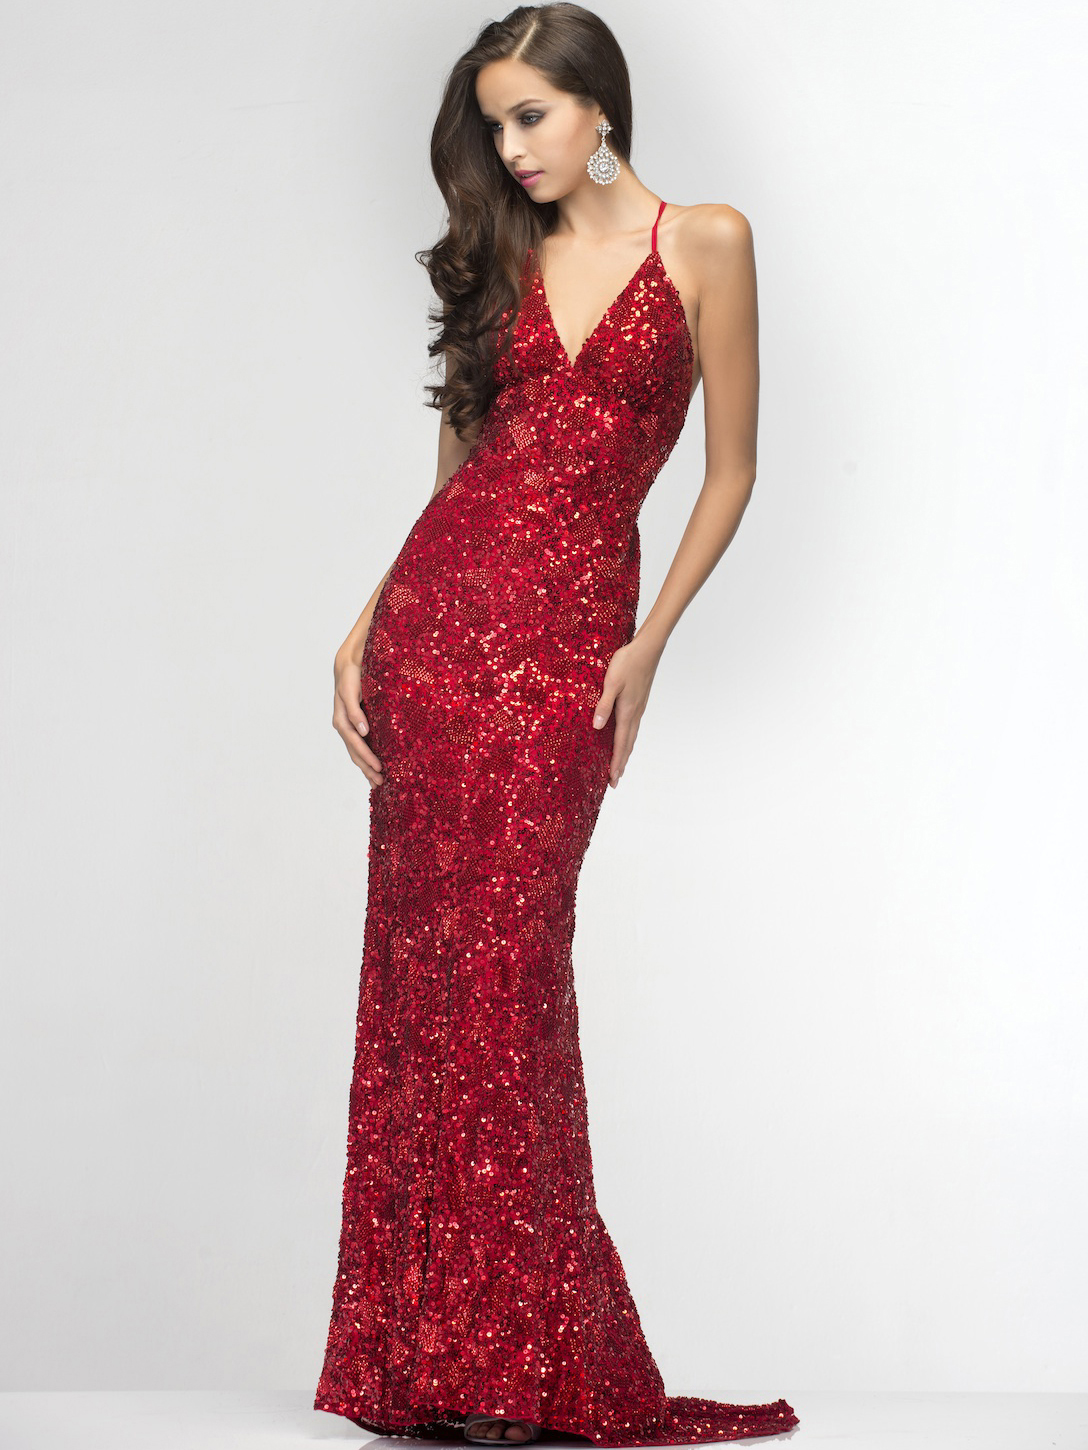 Plunge Bead and Sequin Prom Dress by Scala   Sung Boutique L.A.